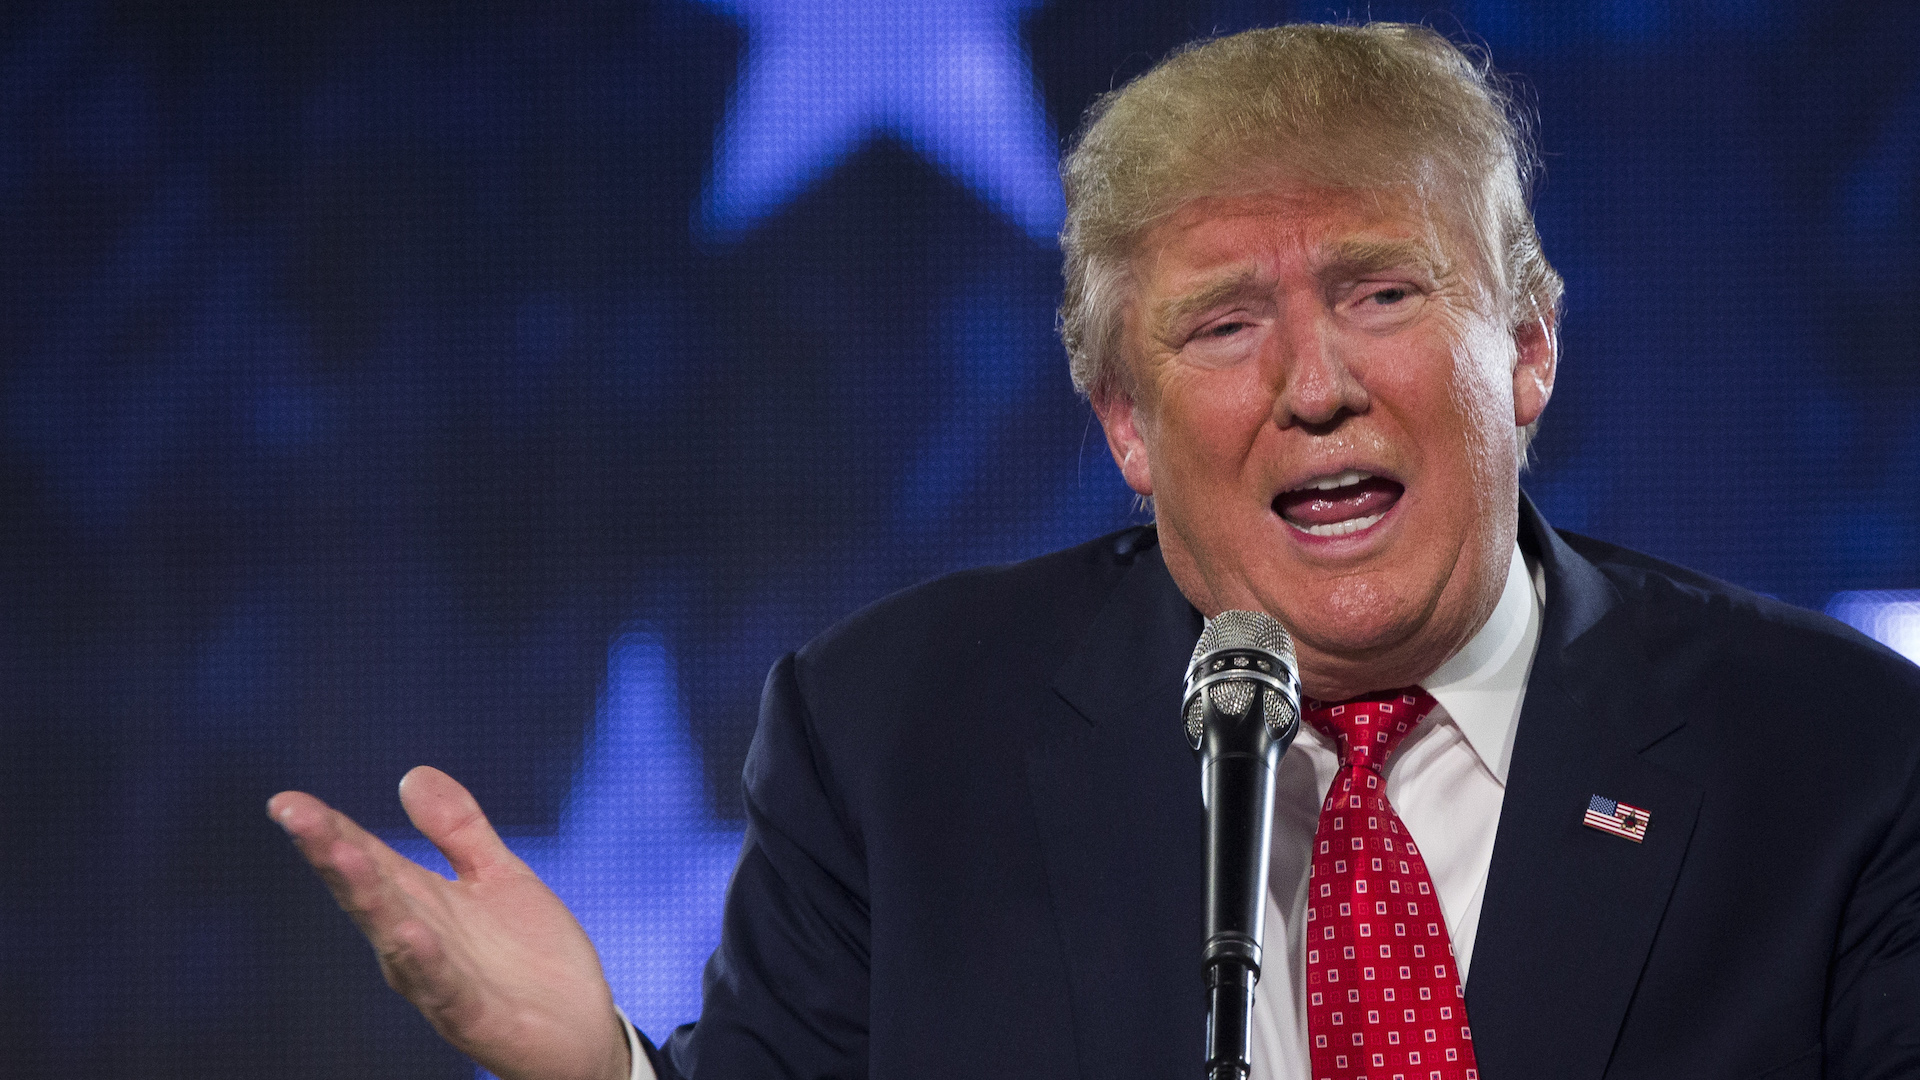 Trump says very curious things about God, church and the Bible